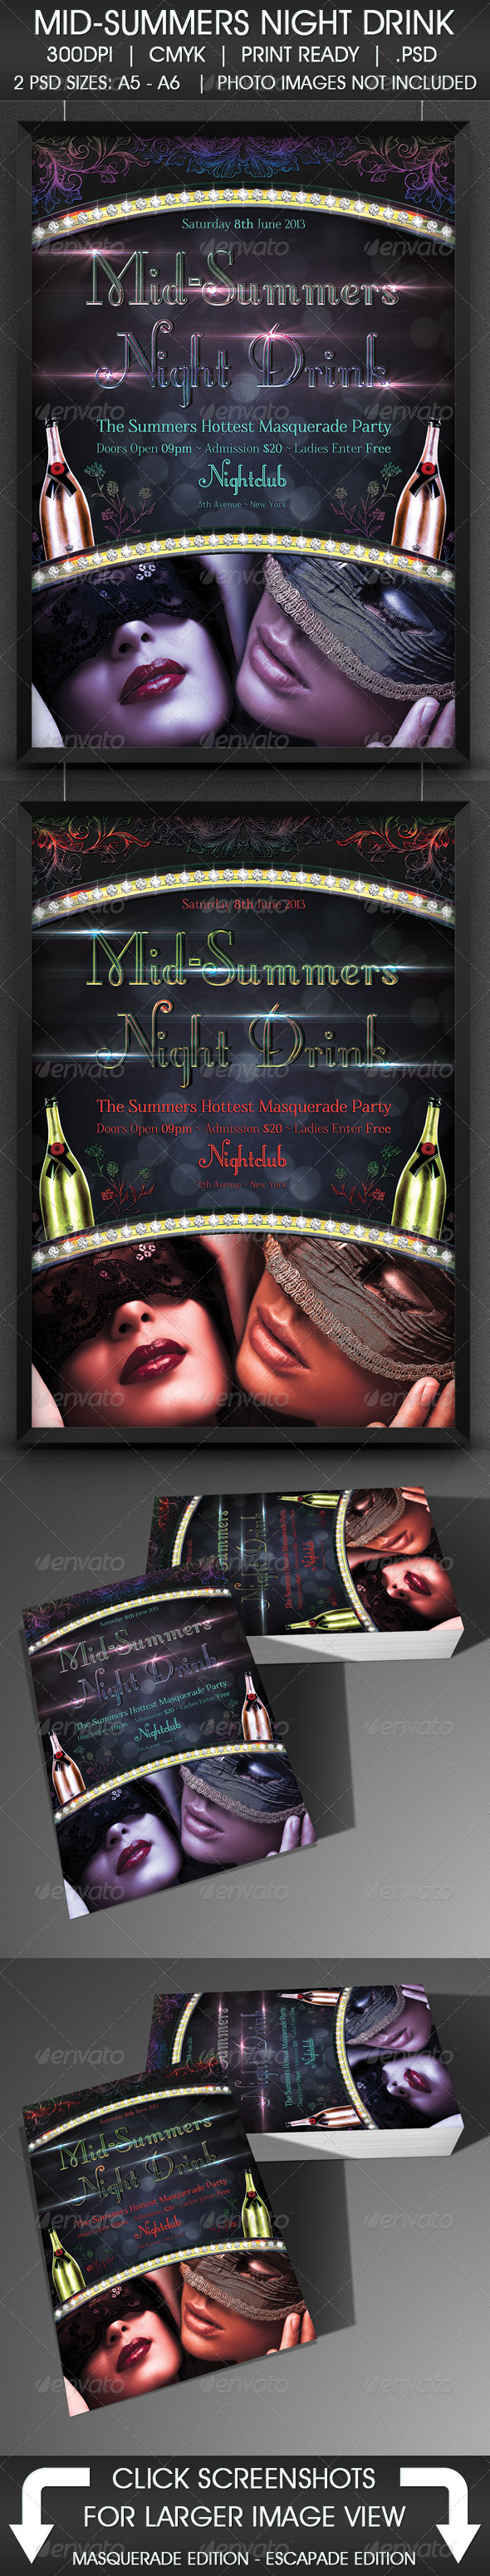 GraphicRiver Mid-Summers Night Drink 5104107